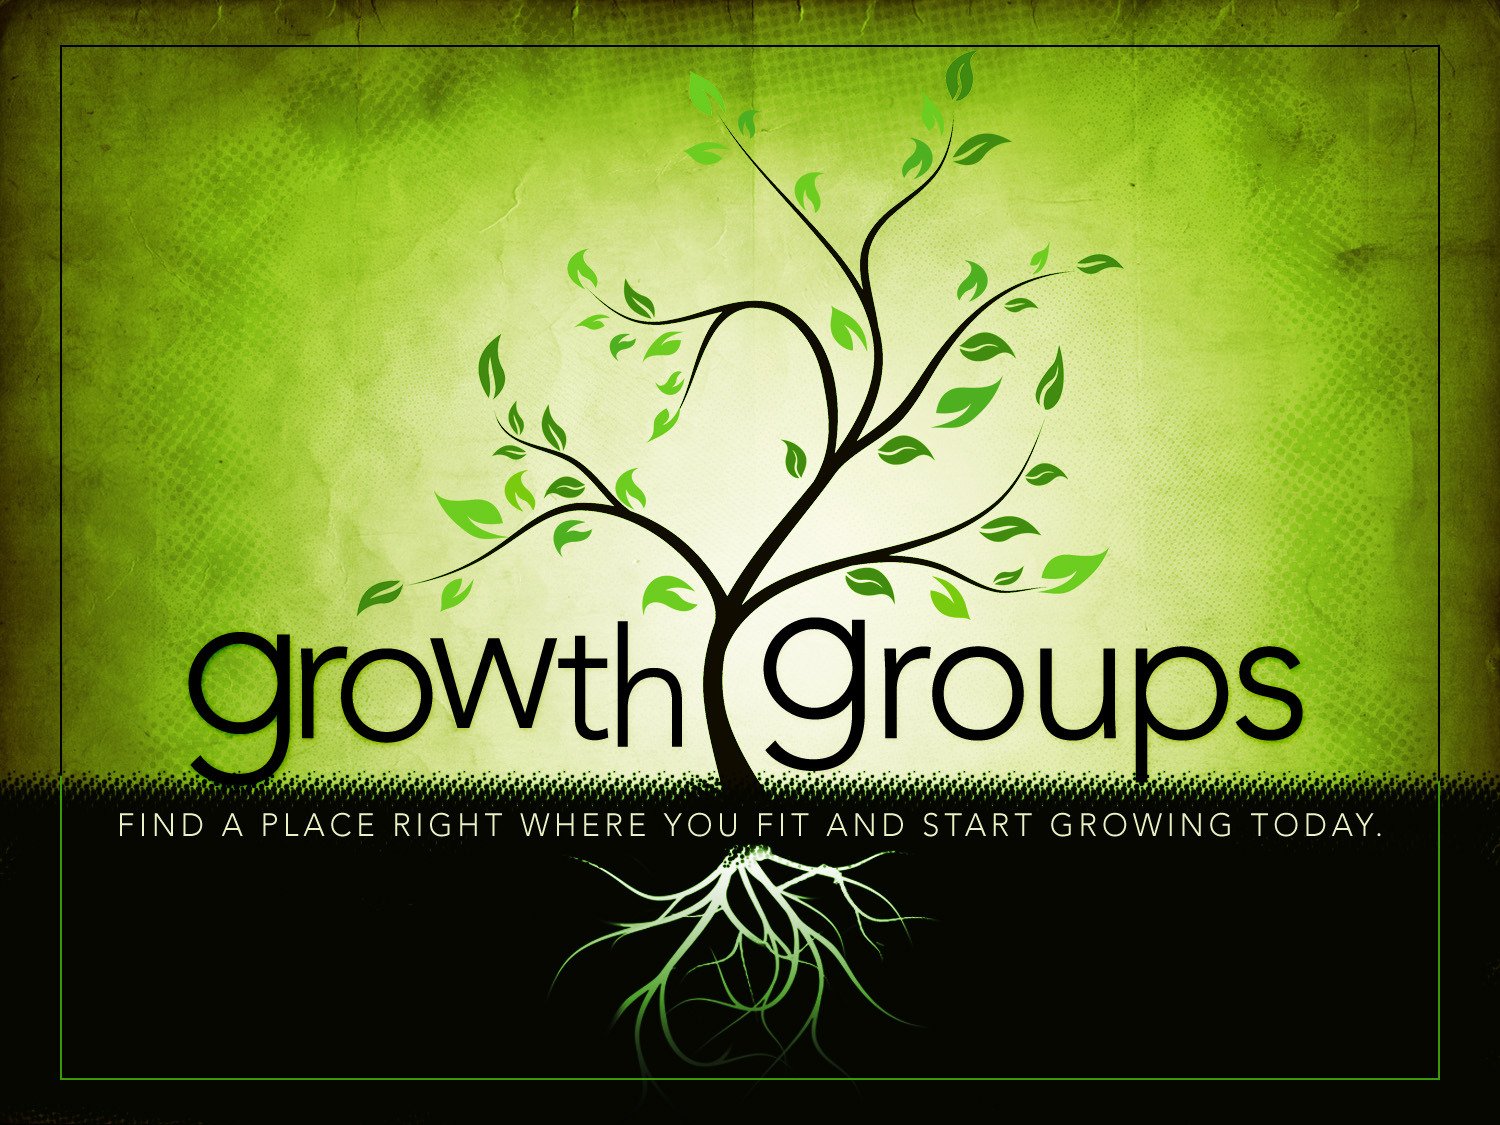 2017 Summer Growth Groups